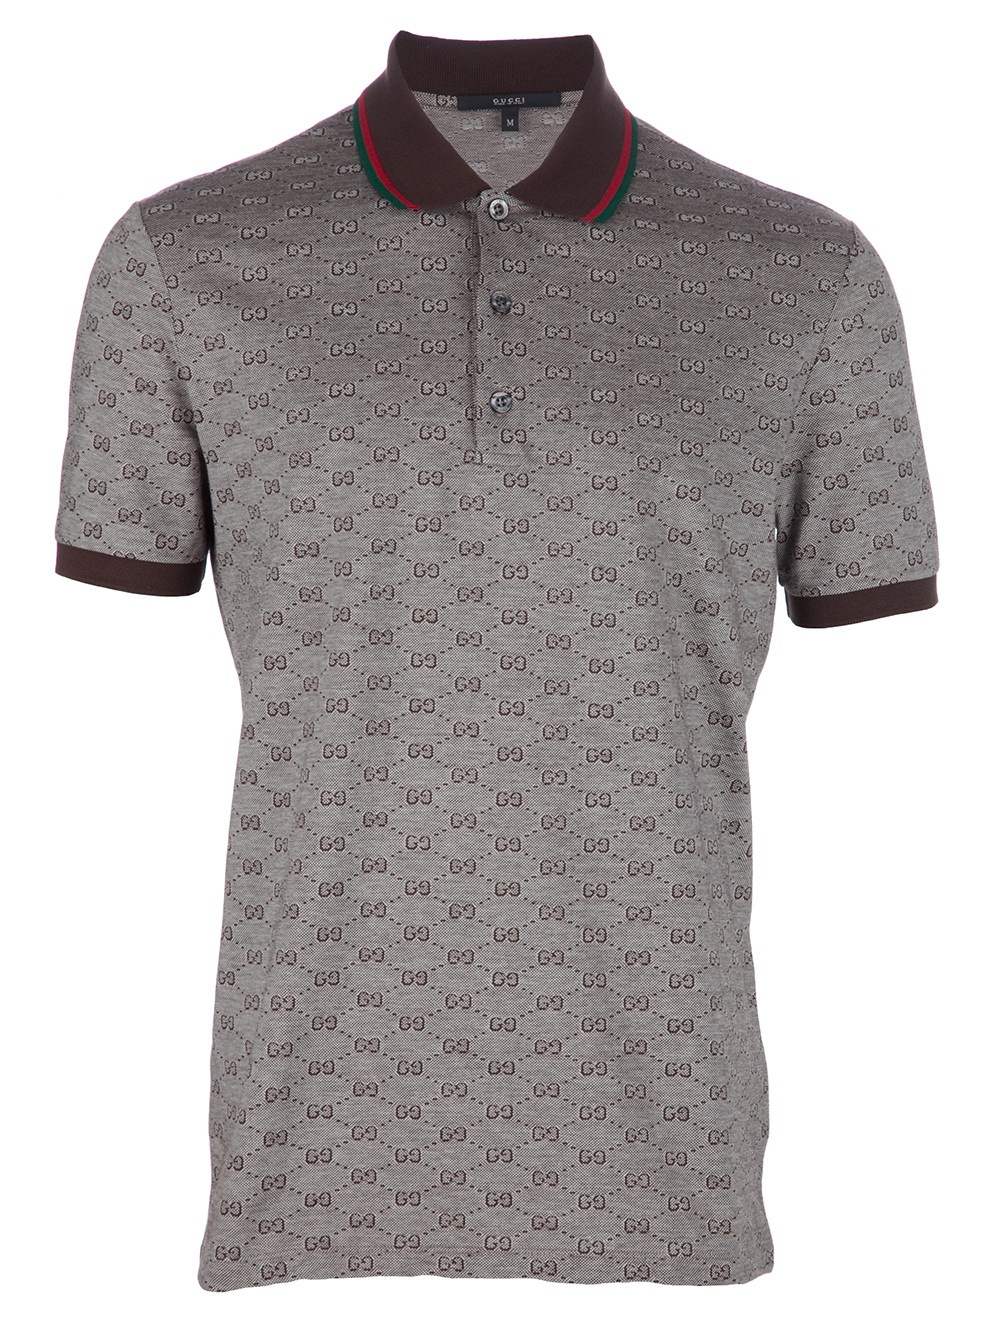 Gucci monogram polo shirt in brown for men lyst for Initials on dress shirts